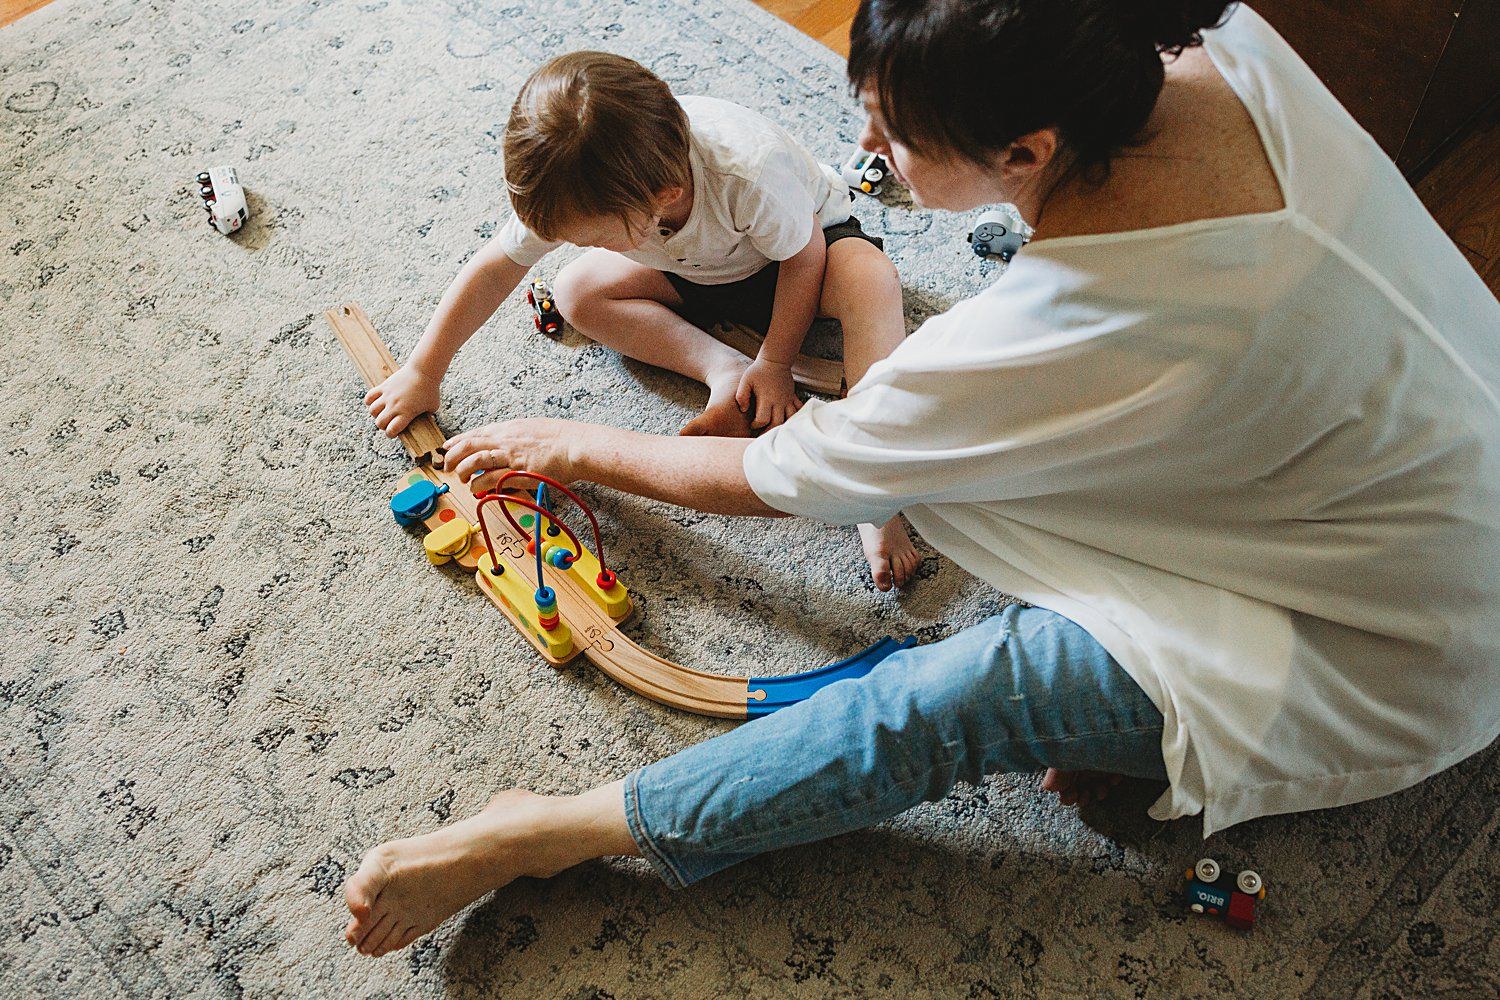 Mom and boy playing with toy